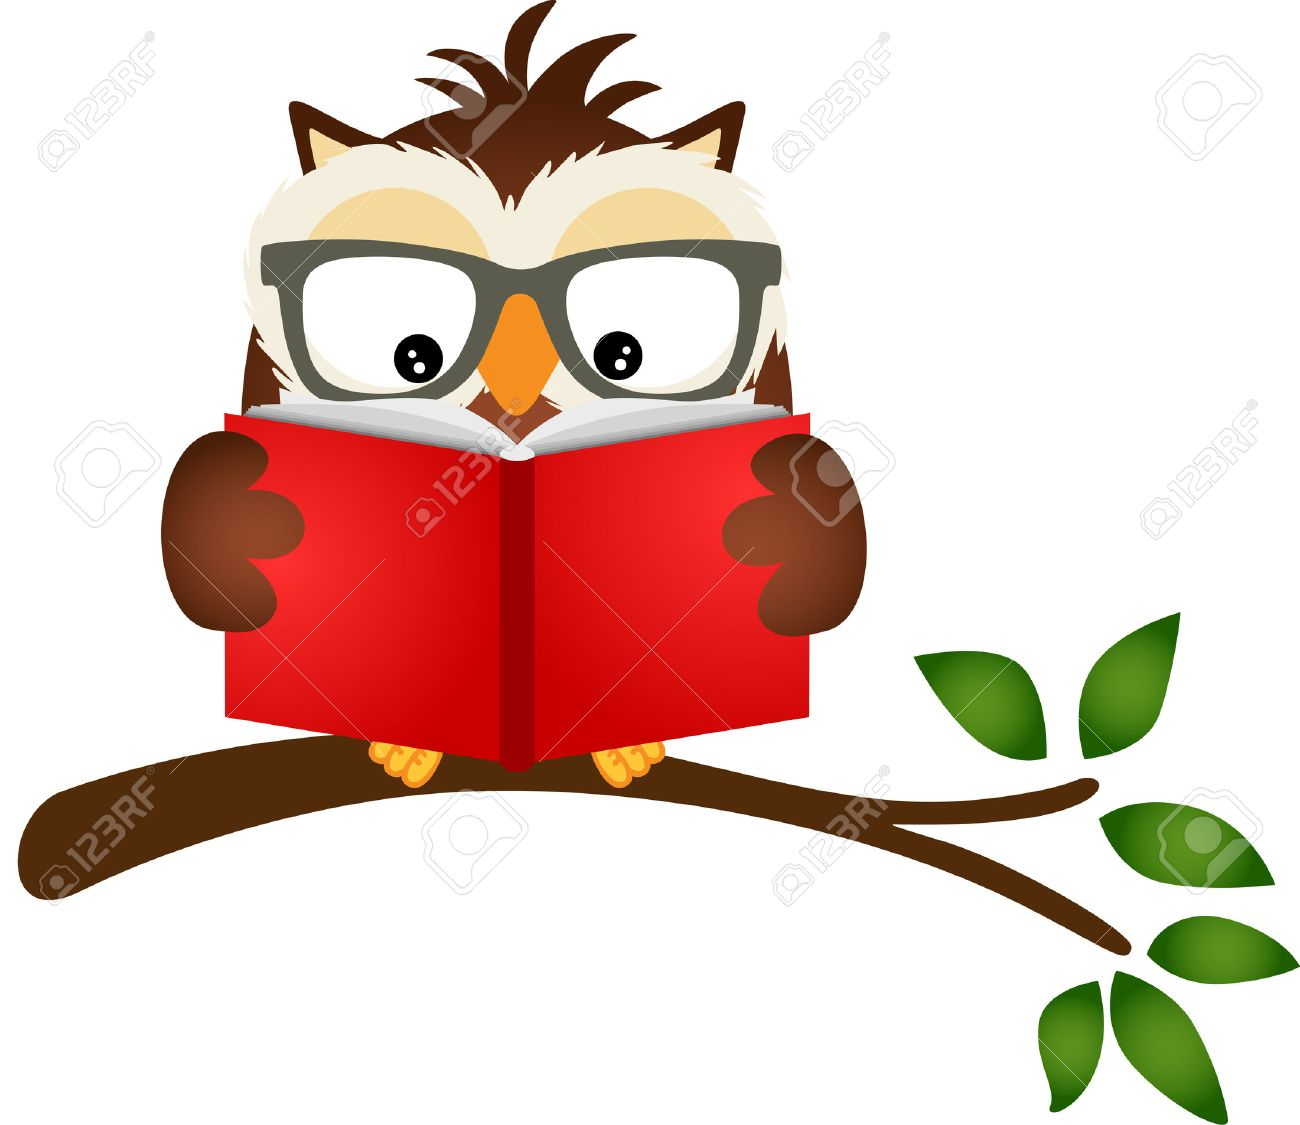 owl reading a book on tree branch royalty free cliparts vectors rh 123rf com owl reading book clipart owl reading book clipart